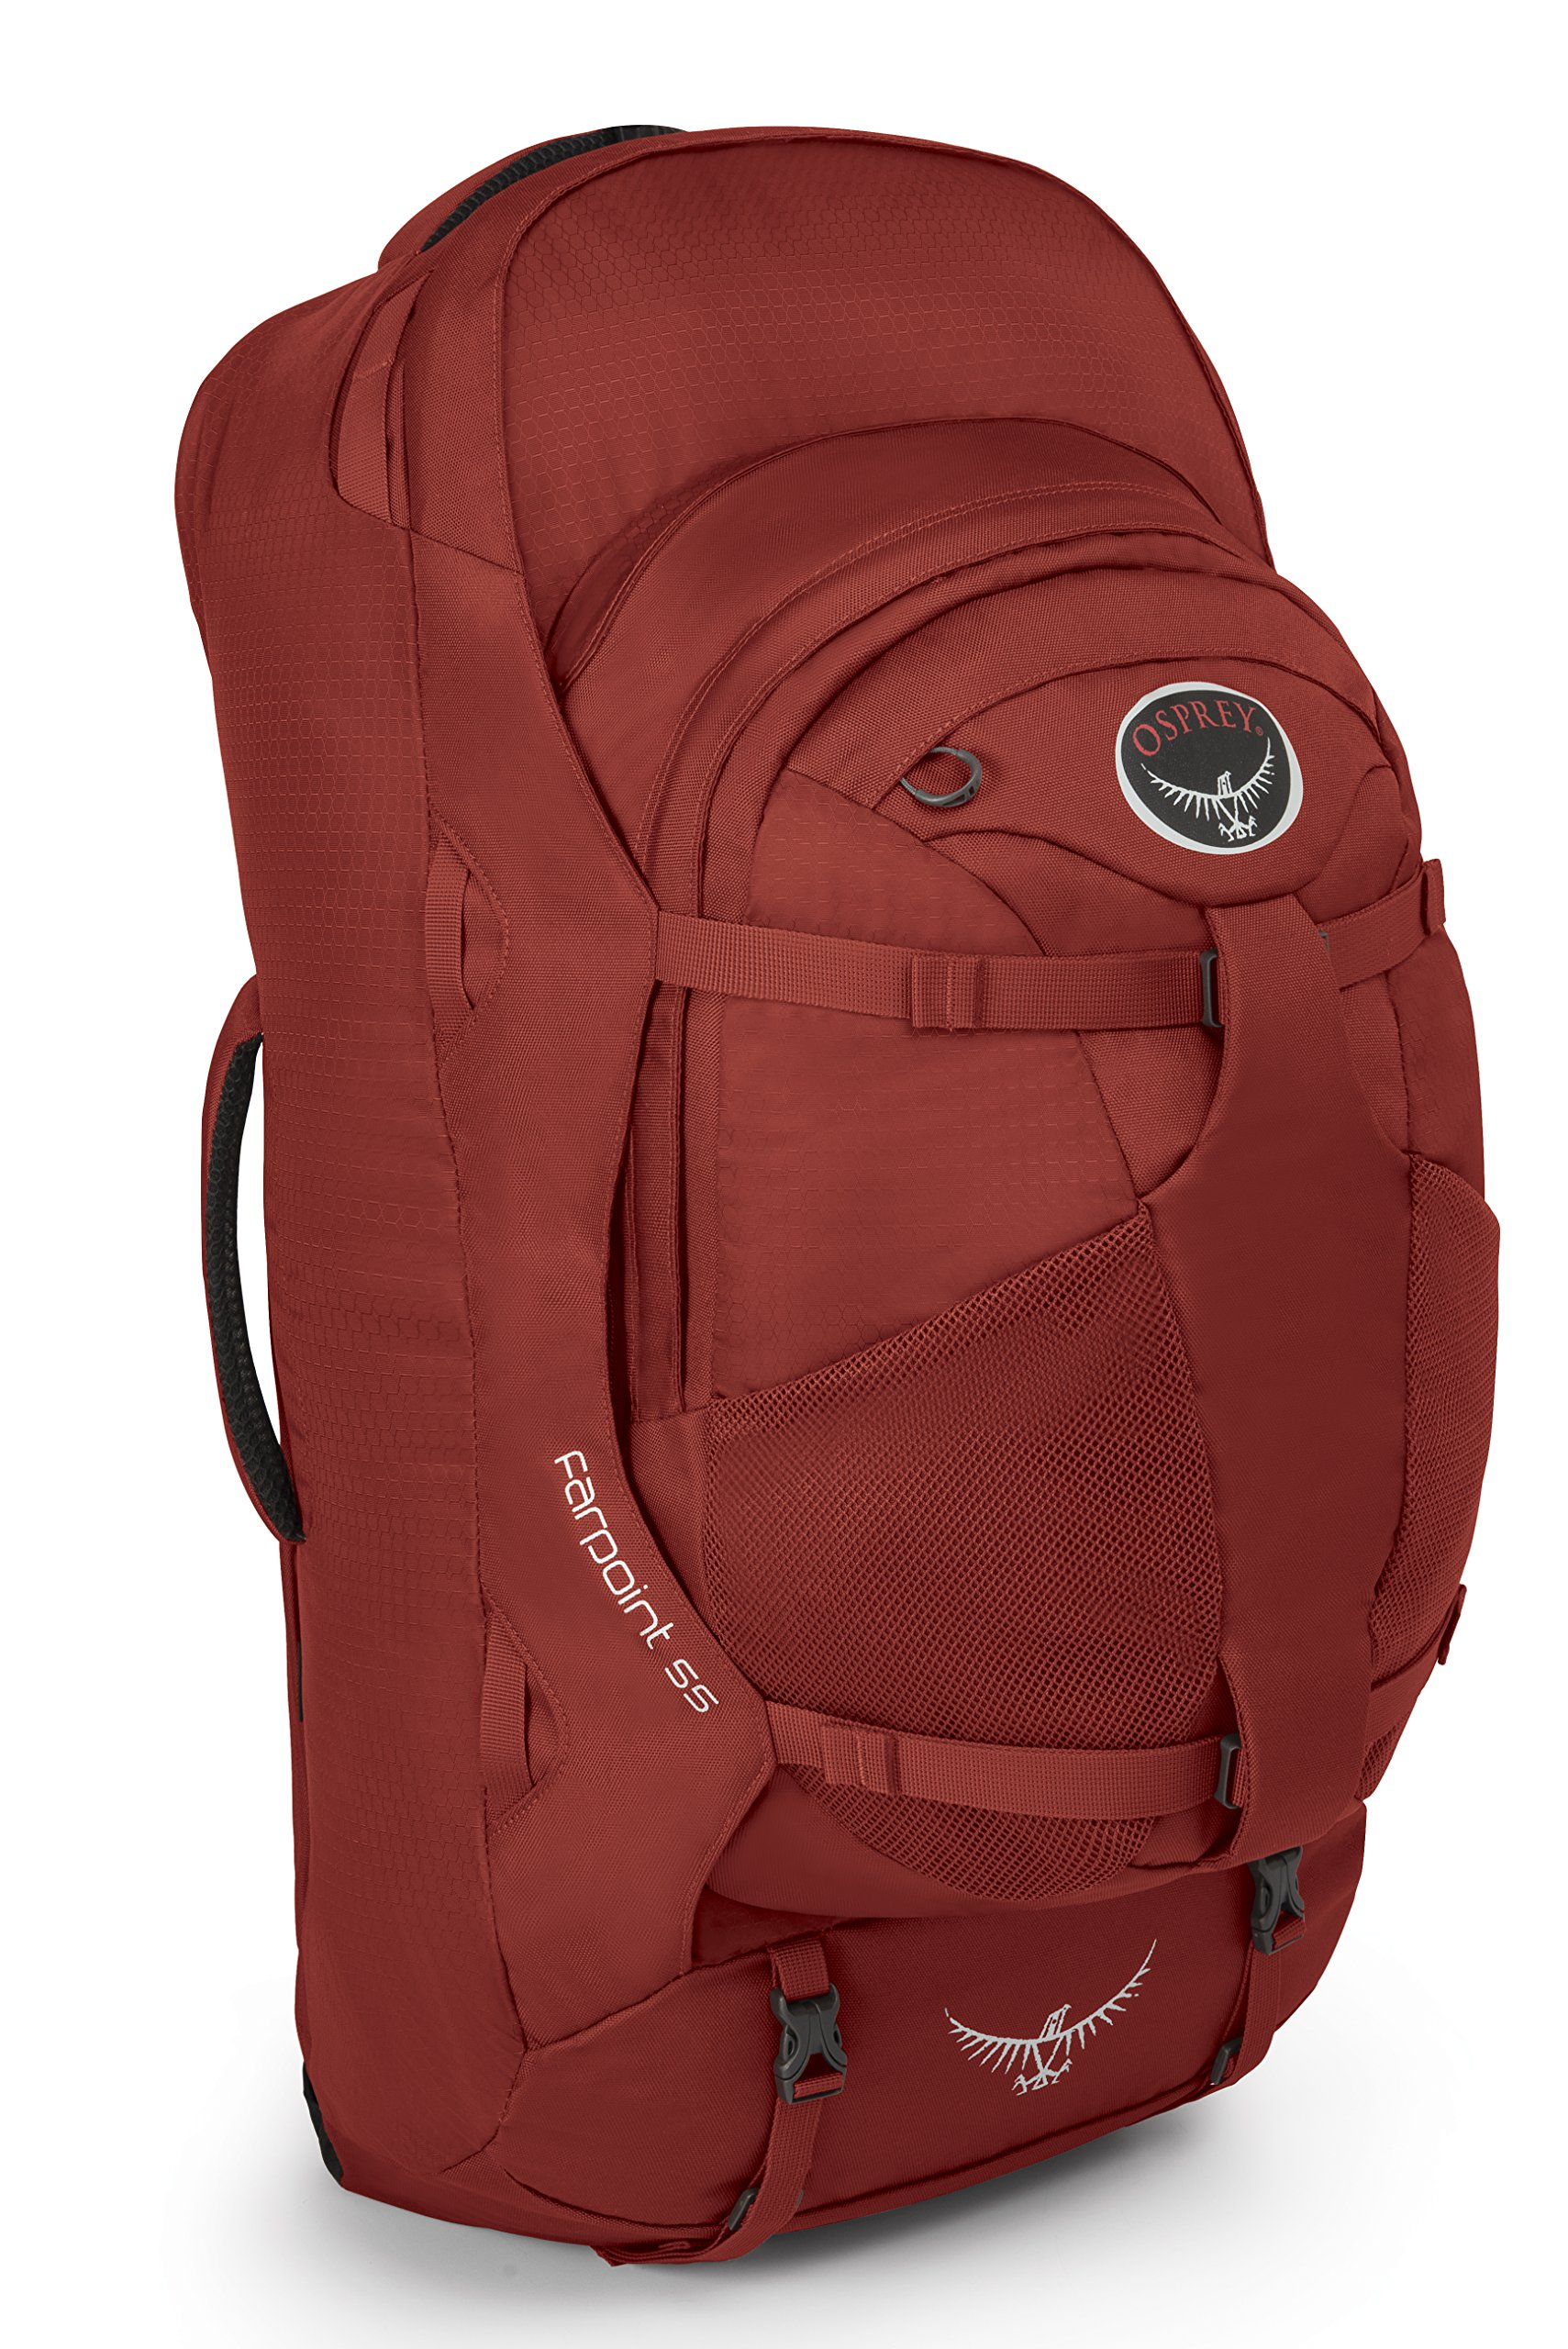 Osprey Packs Farpoint 55 Travel Backpack, Jasper Red, Medium/Large by Osprey